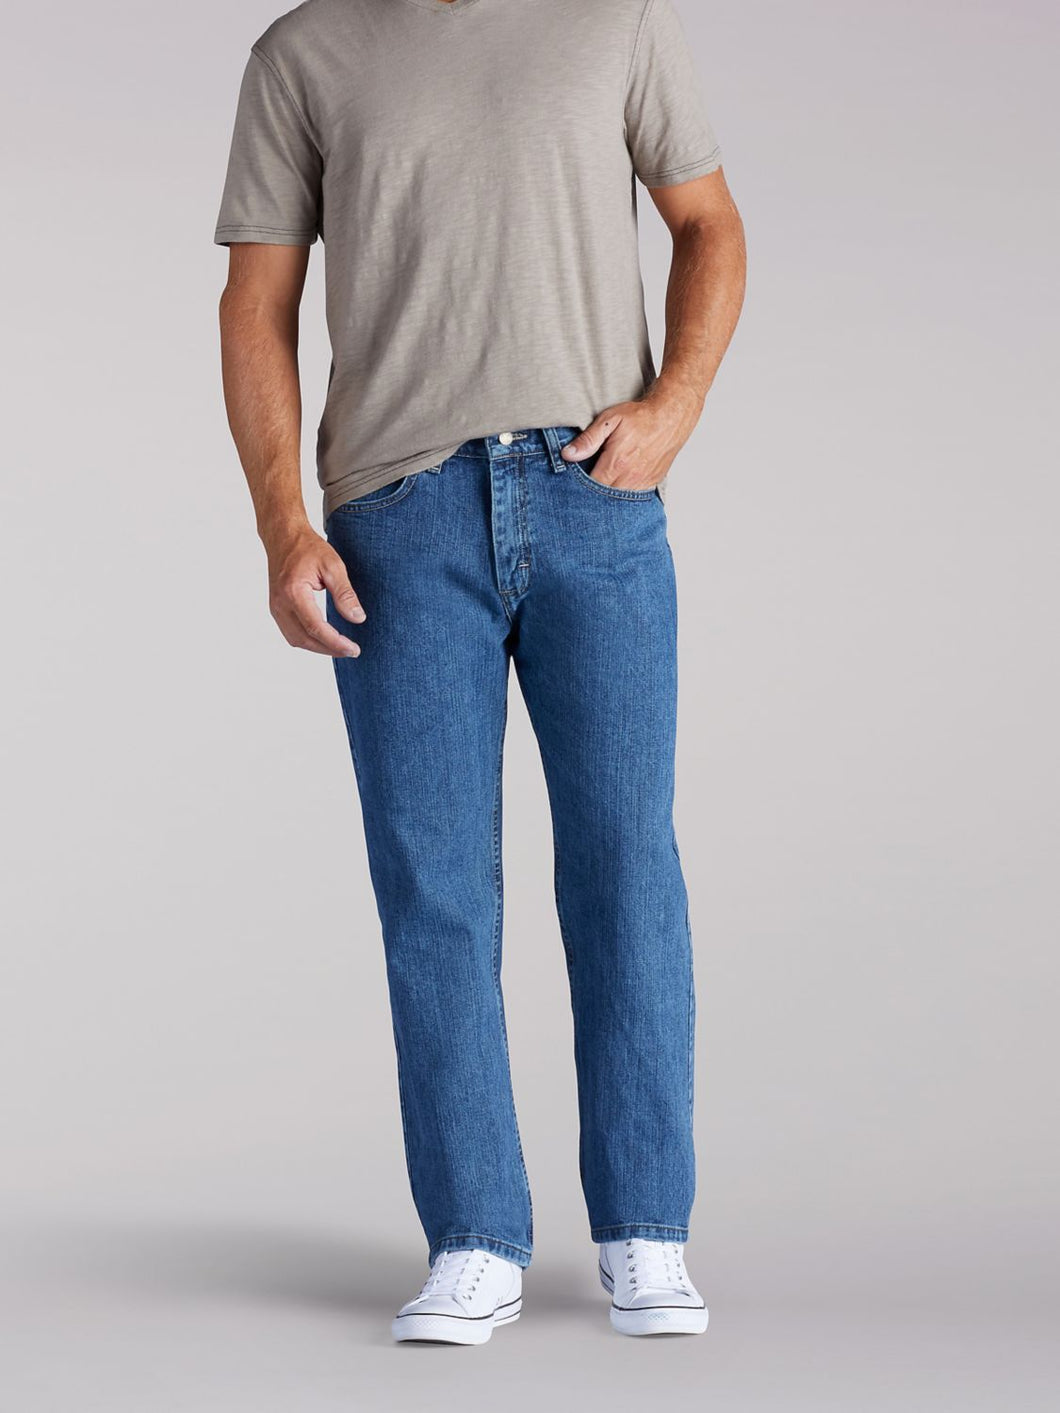 Relaxed Fit Straight Leg Jean in Newman from Front View